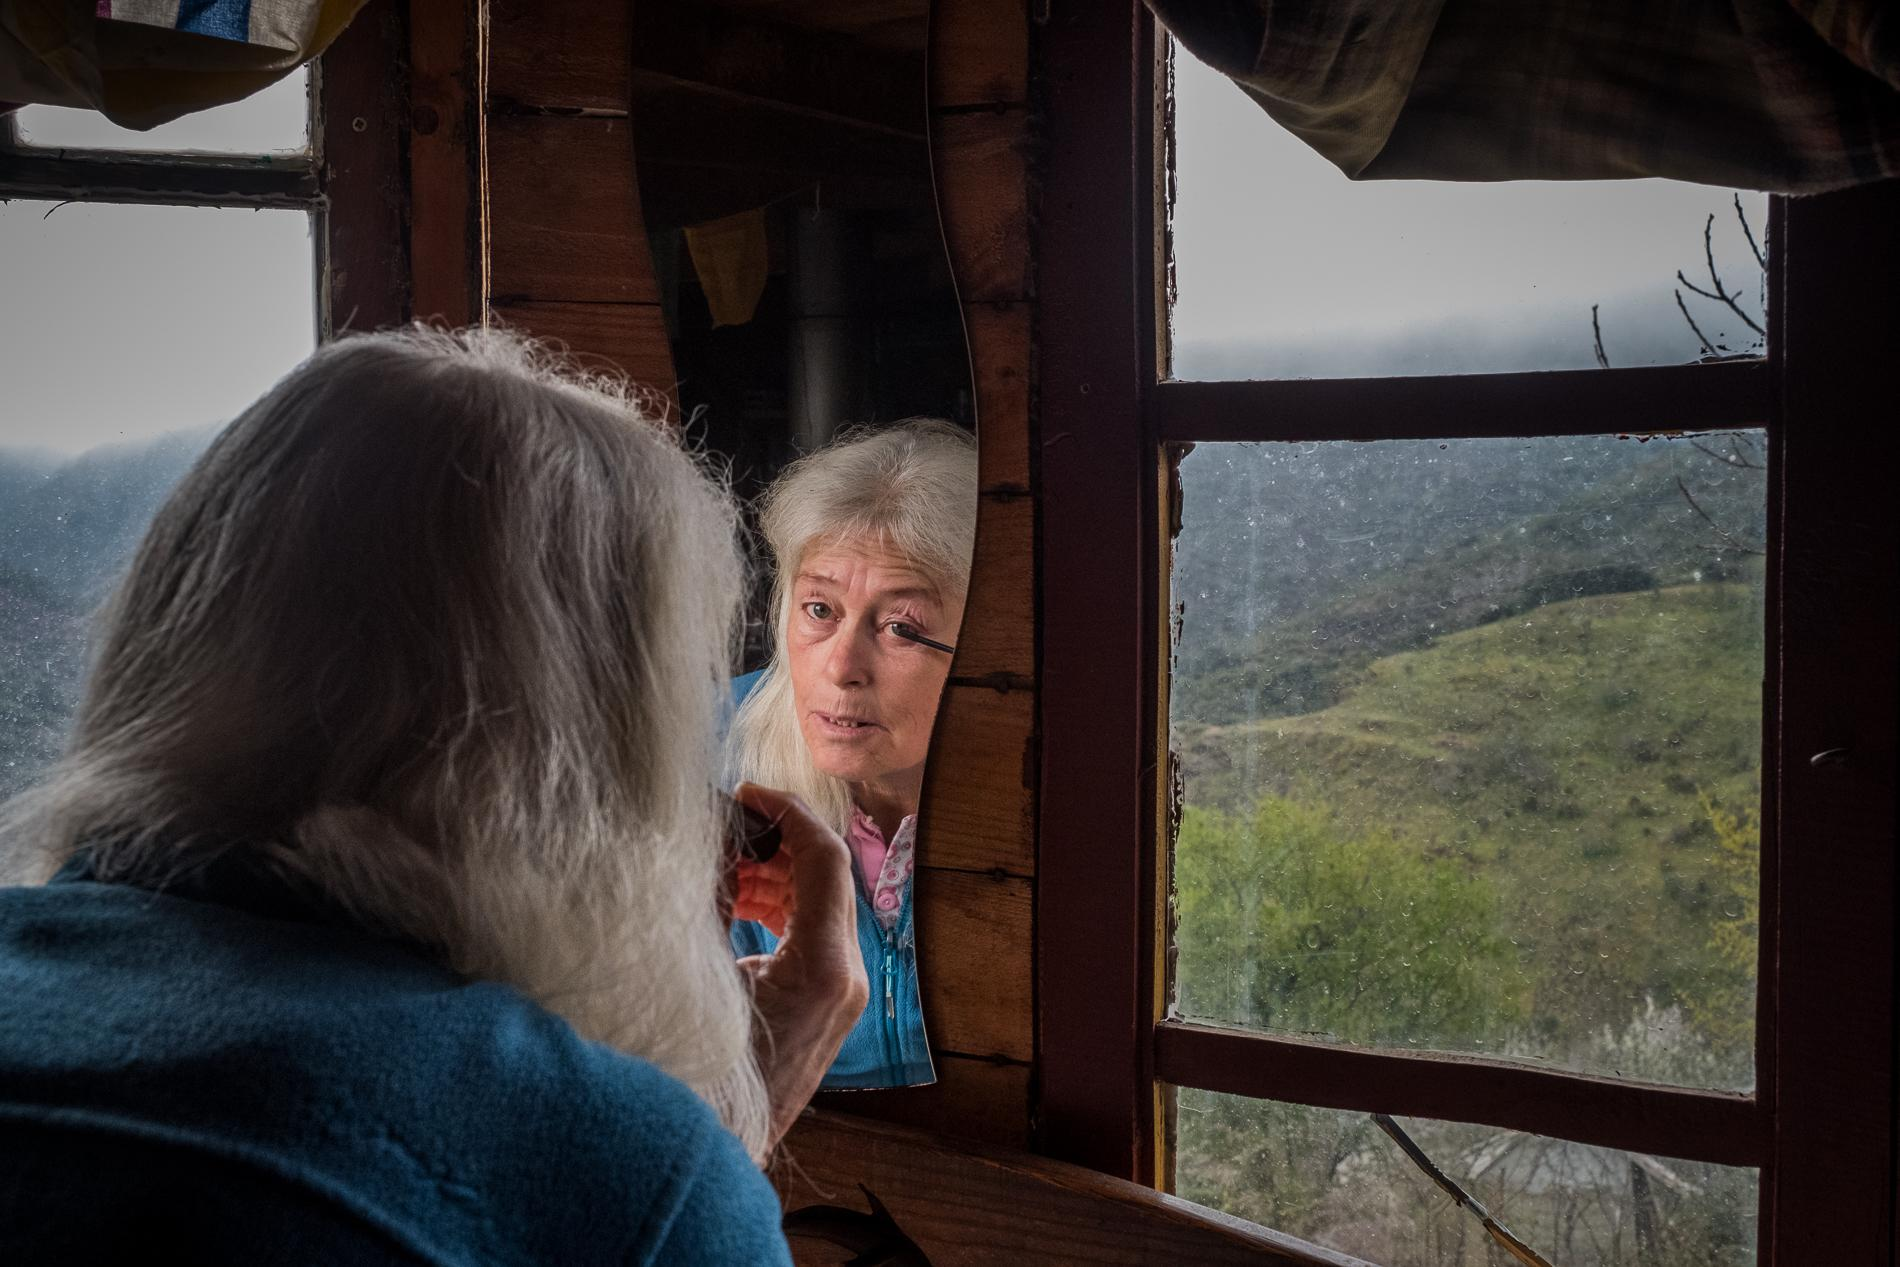 Hannah Brüderer brings on make-up in a wooden yurt in Matavenero, Spain. She is among the founders of the village, where she brought up her two children. She still has a house in the village and visits the community regularly, a.o. to visit her son and grandchildren. Matavenero, 3-4-2021